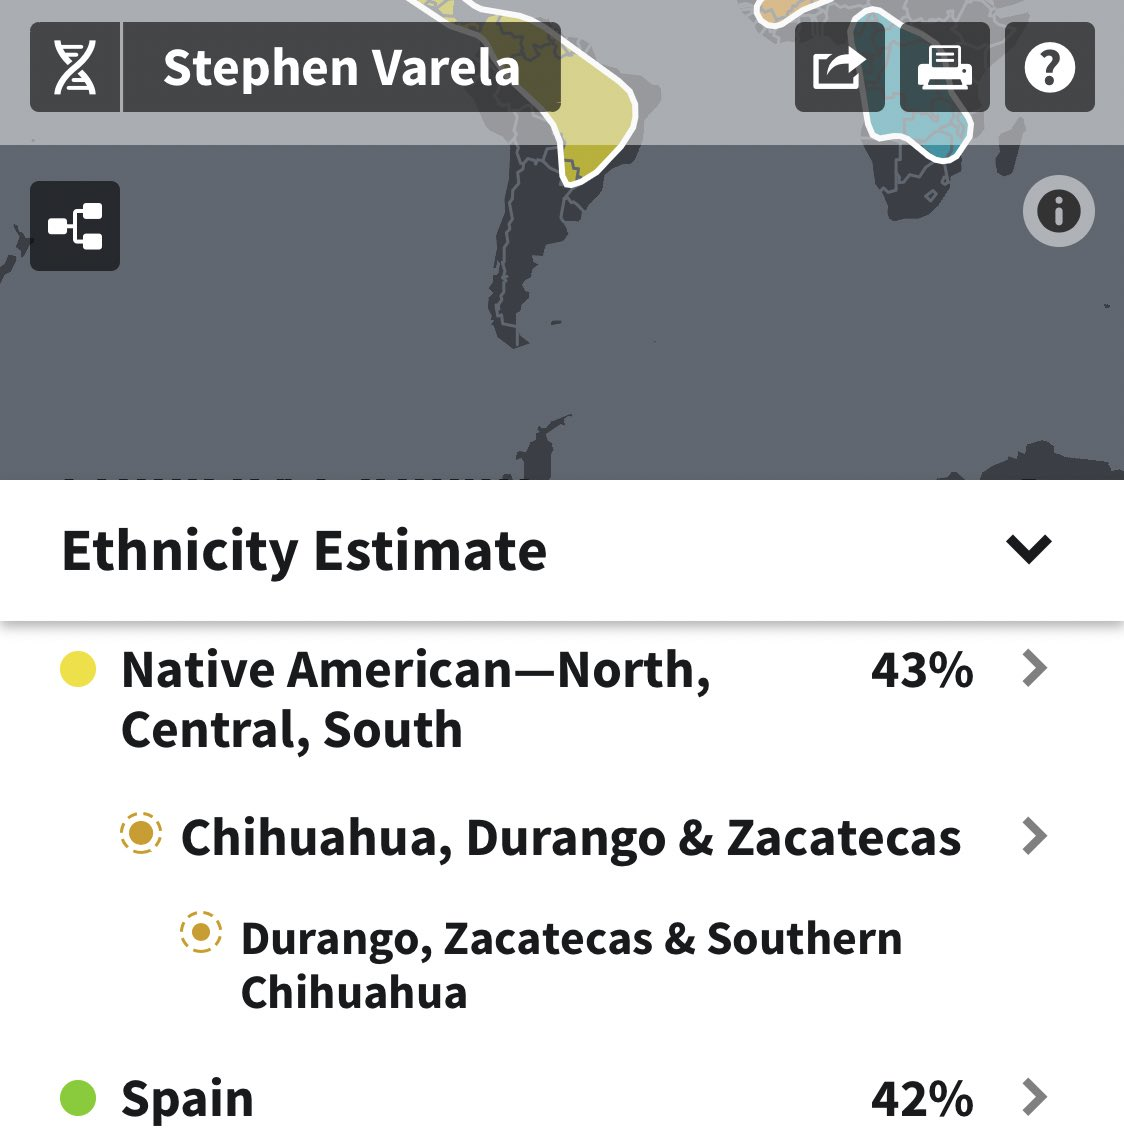 Got back my #ancestrydna results and I must admit I was a little scared about it. I grew up in #ElPaso and everything I know is about being #MexicanAmerican but I knew there was #Spanish in me by visiting #Spain. It was great to see that I split both equally.